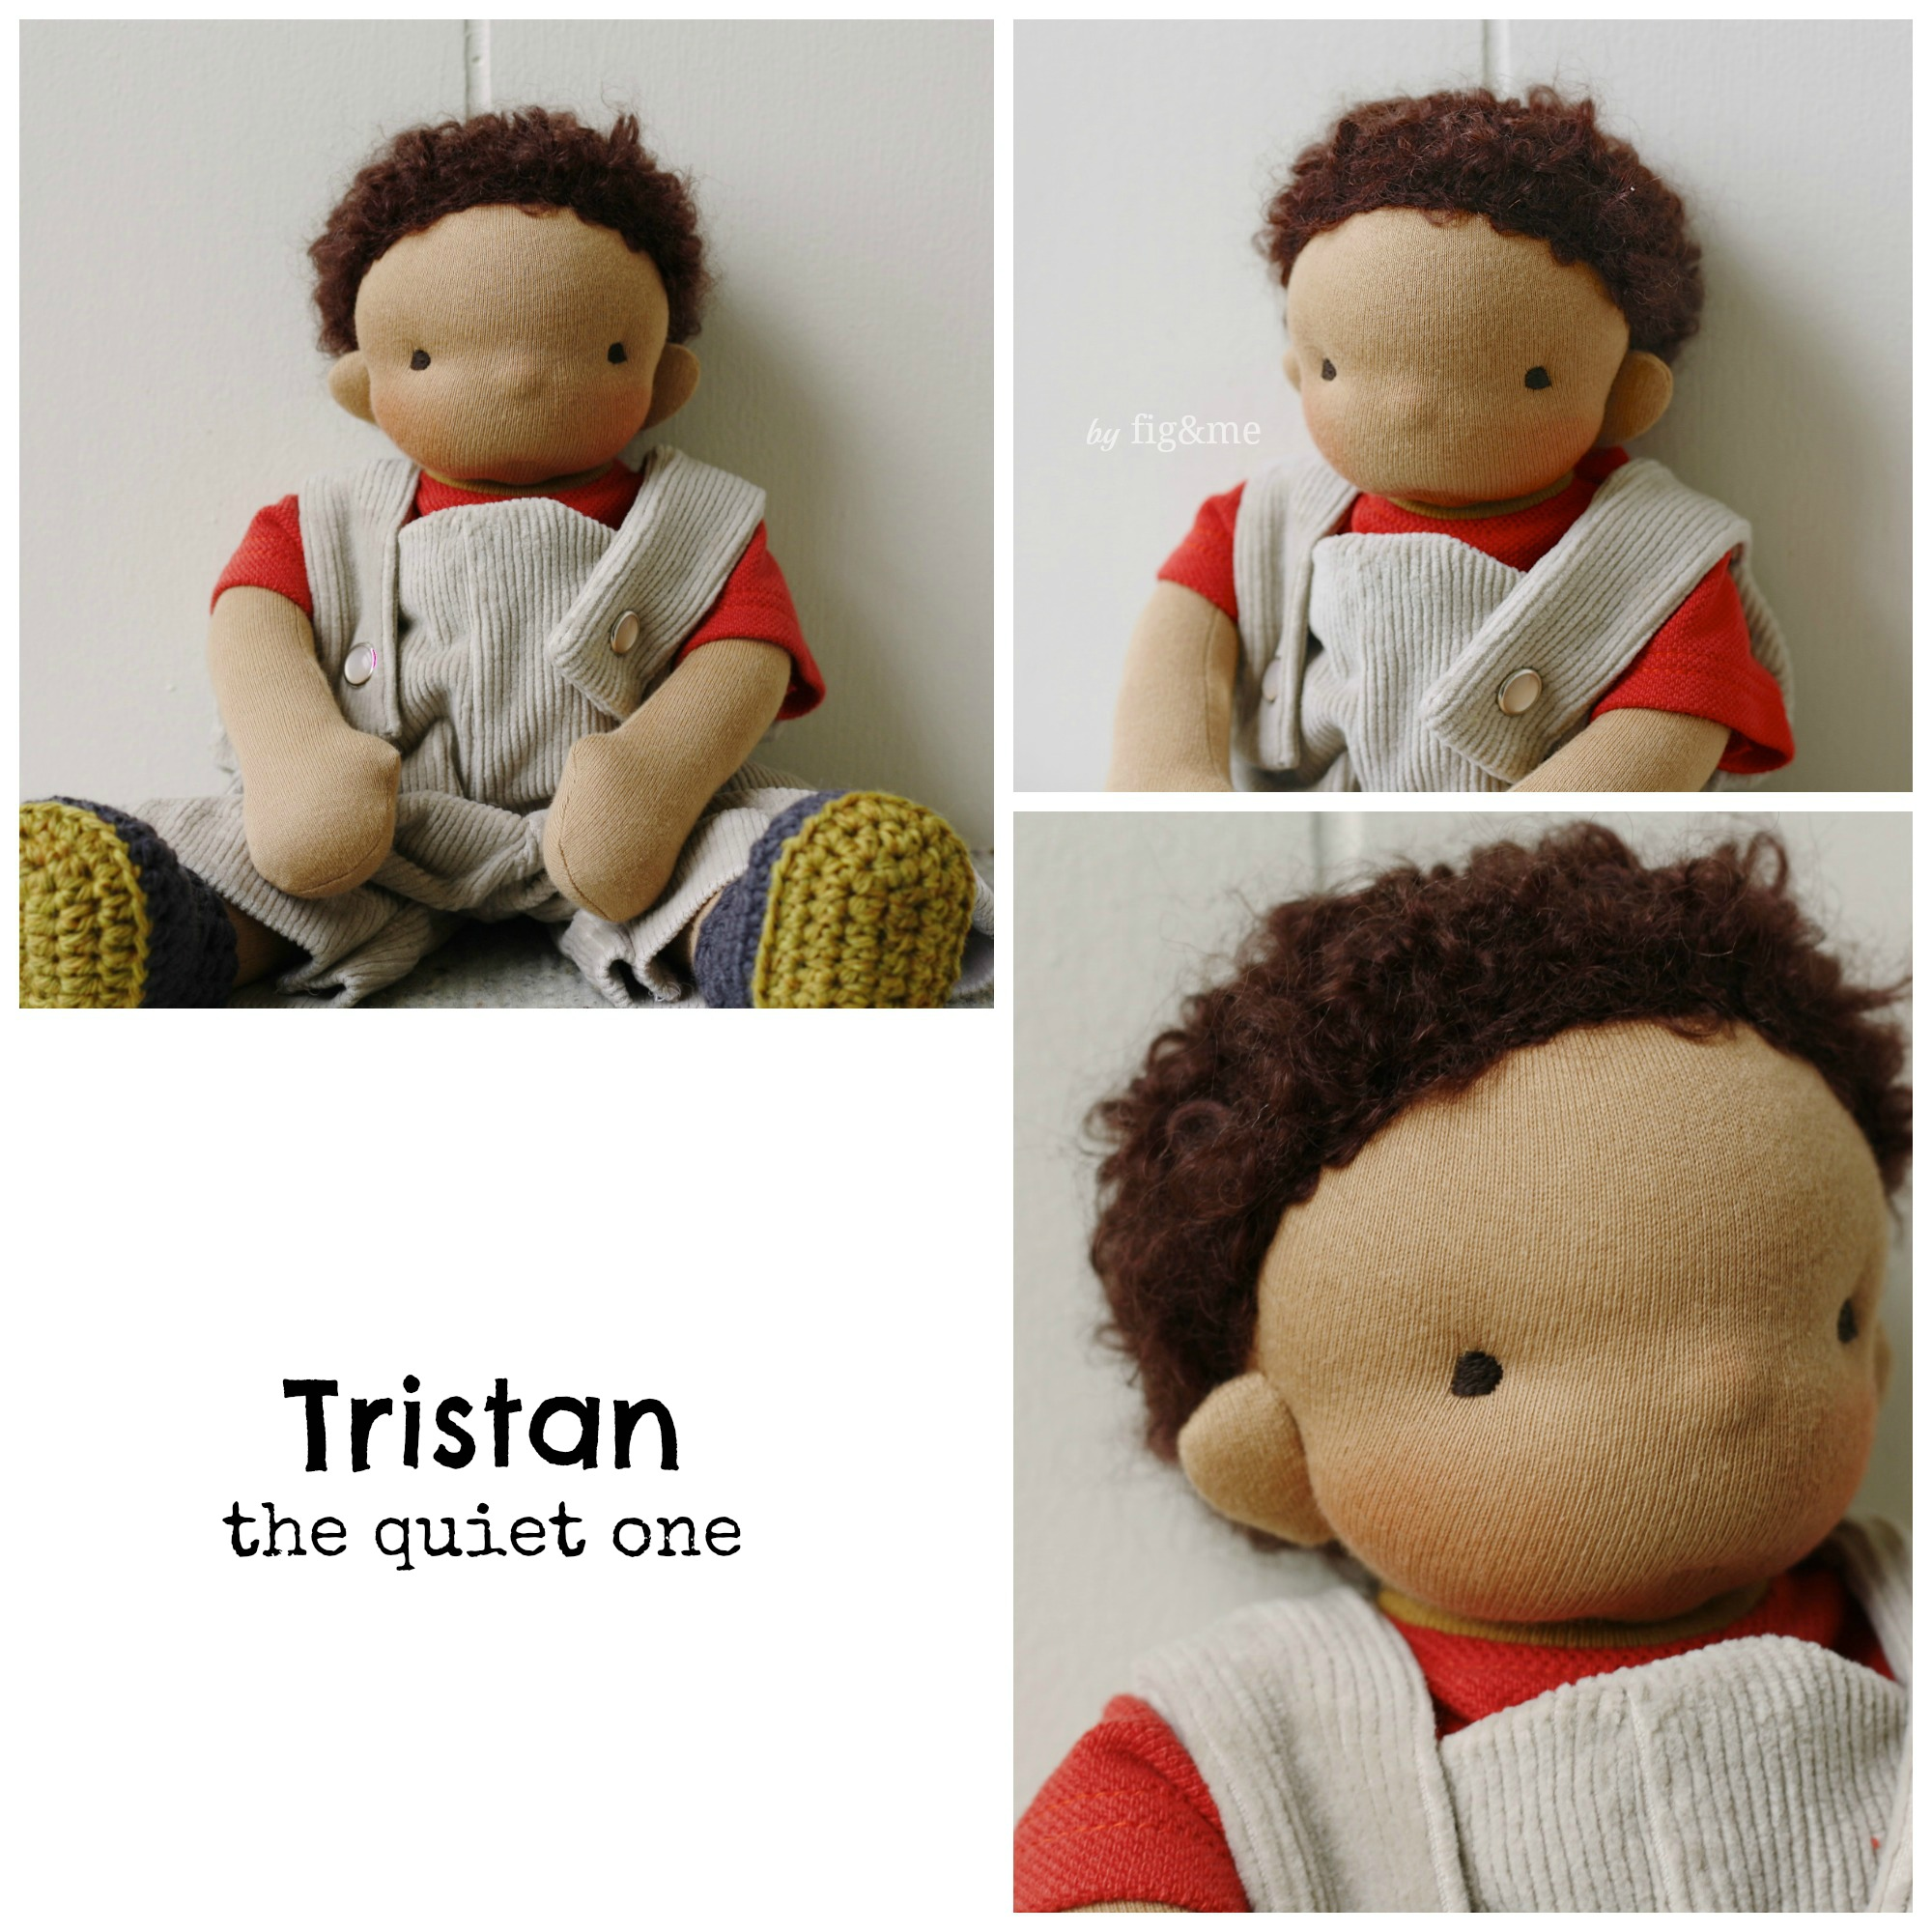 Sweet Tristan, by Fig and me.